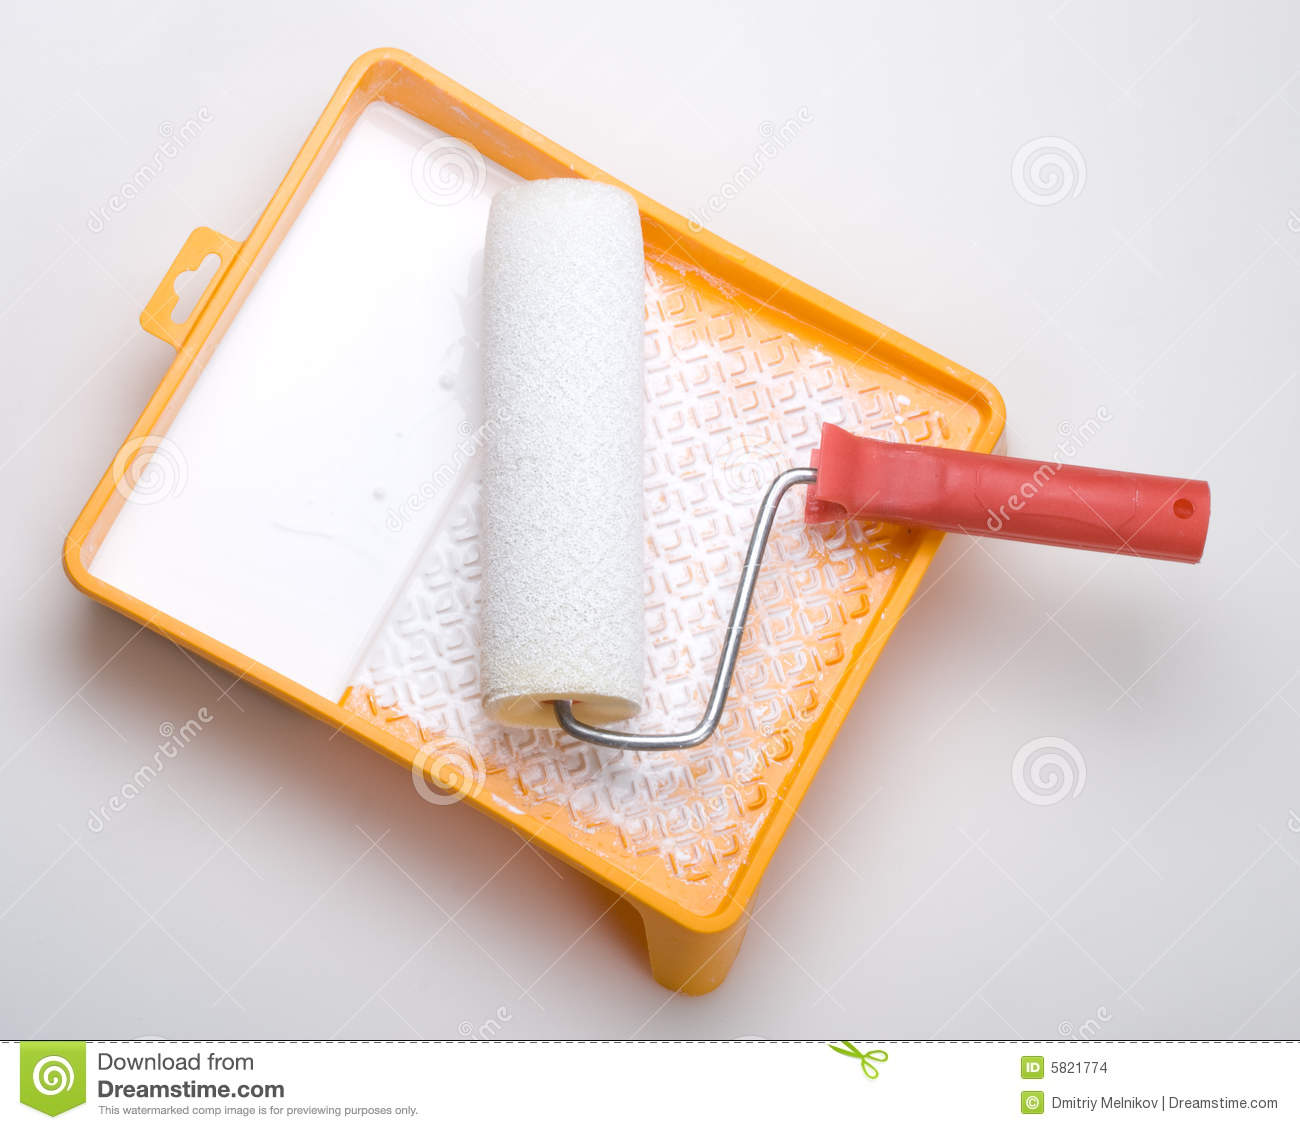 Paint Brush Paint Tray Roller Paint: Paint Roller And Tray Stock Photo. Image Of Doityourself